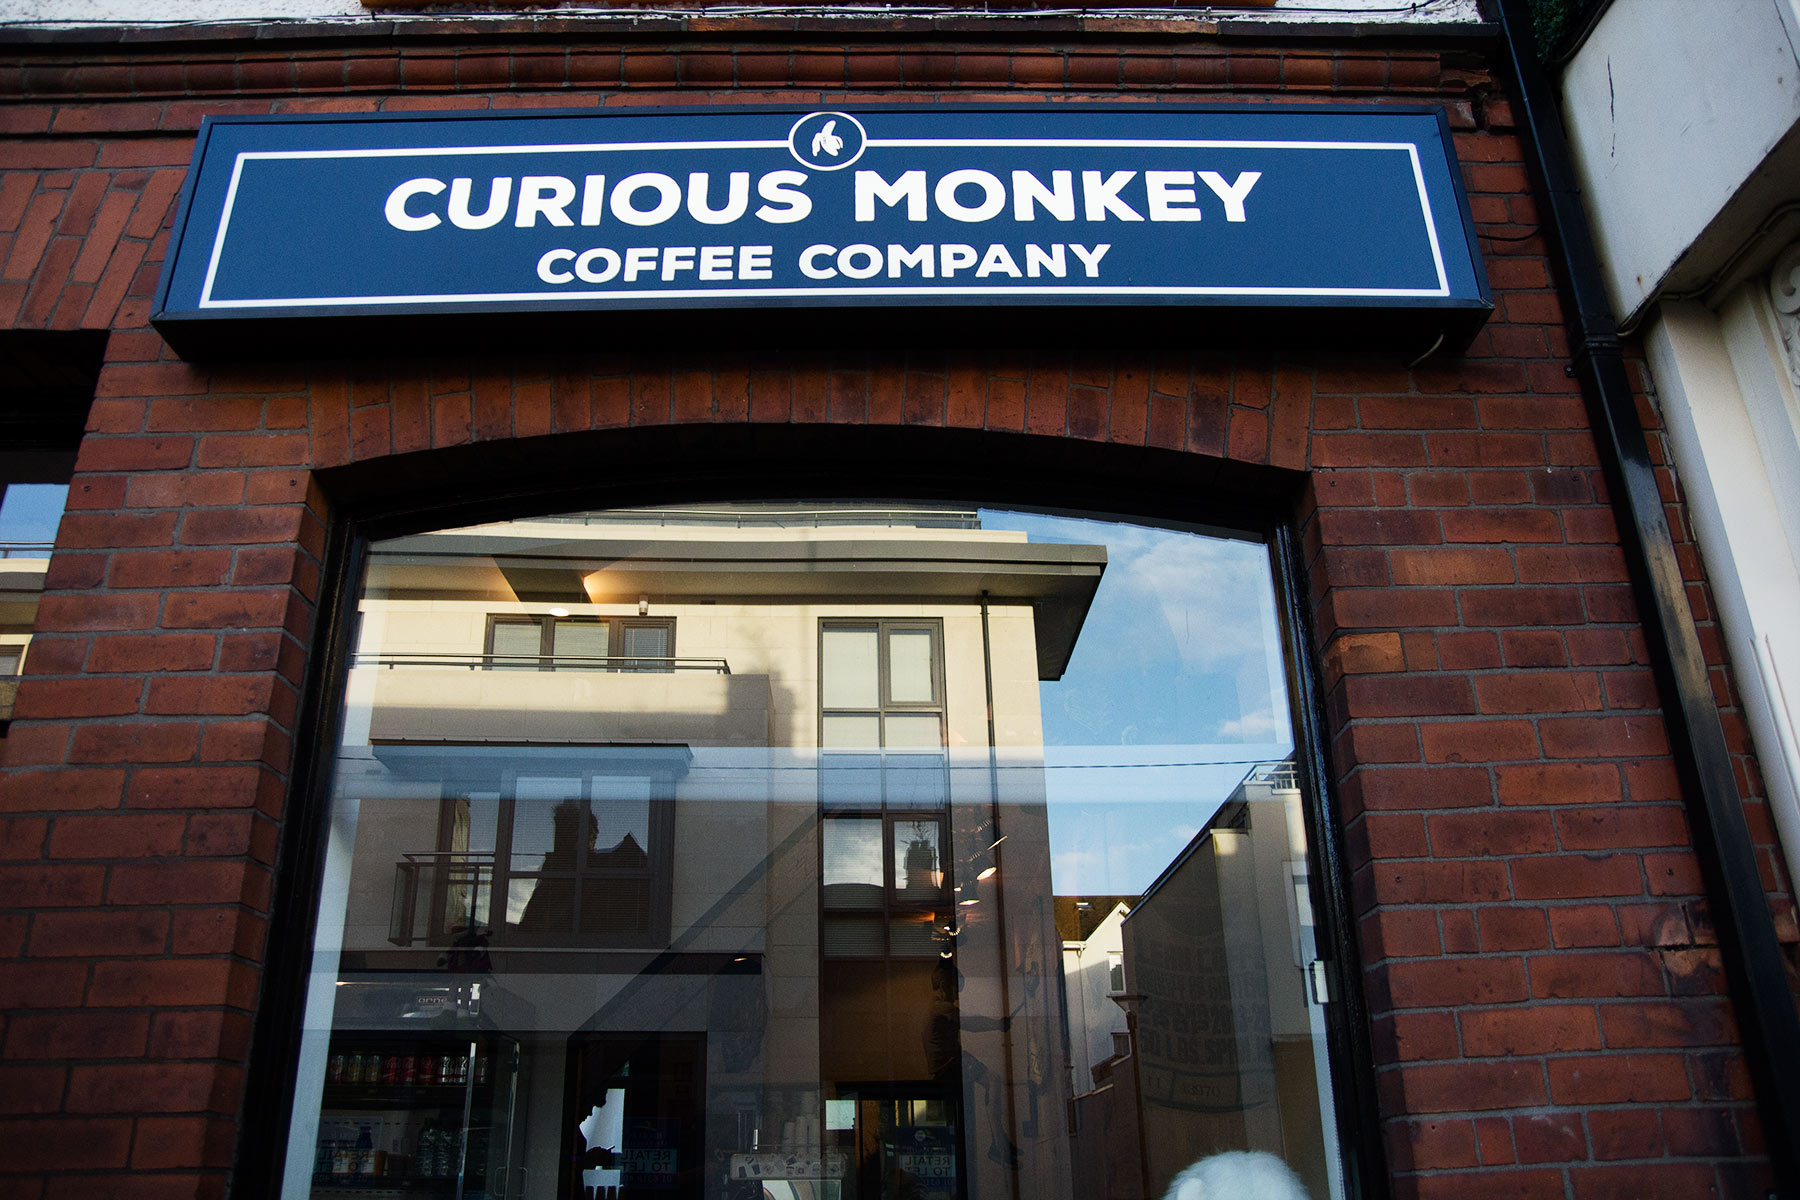 Curious-Monkey-Coffee-Company-Dun-Laoghaire-16